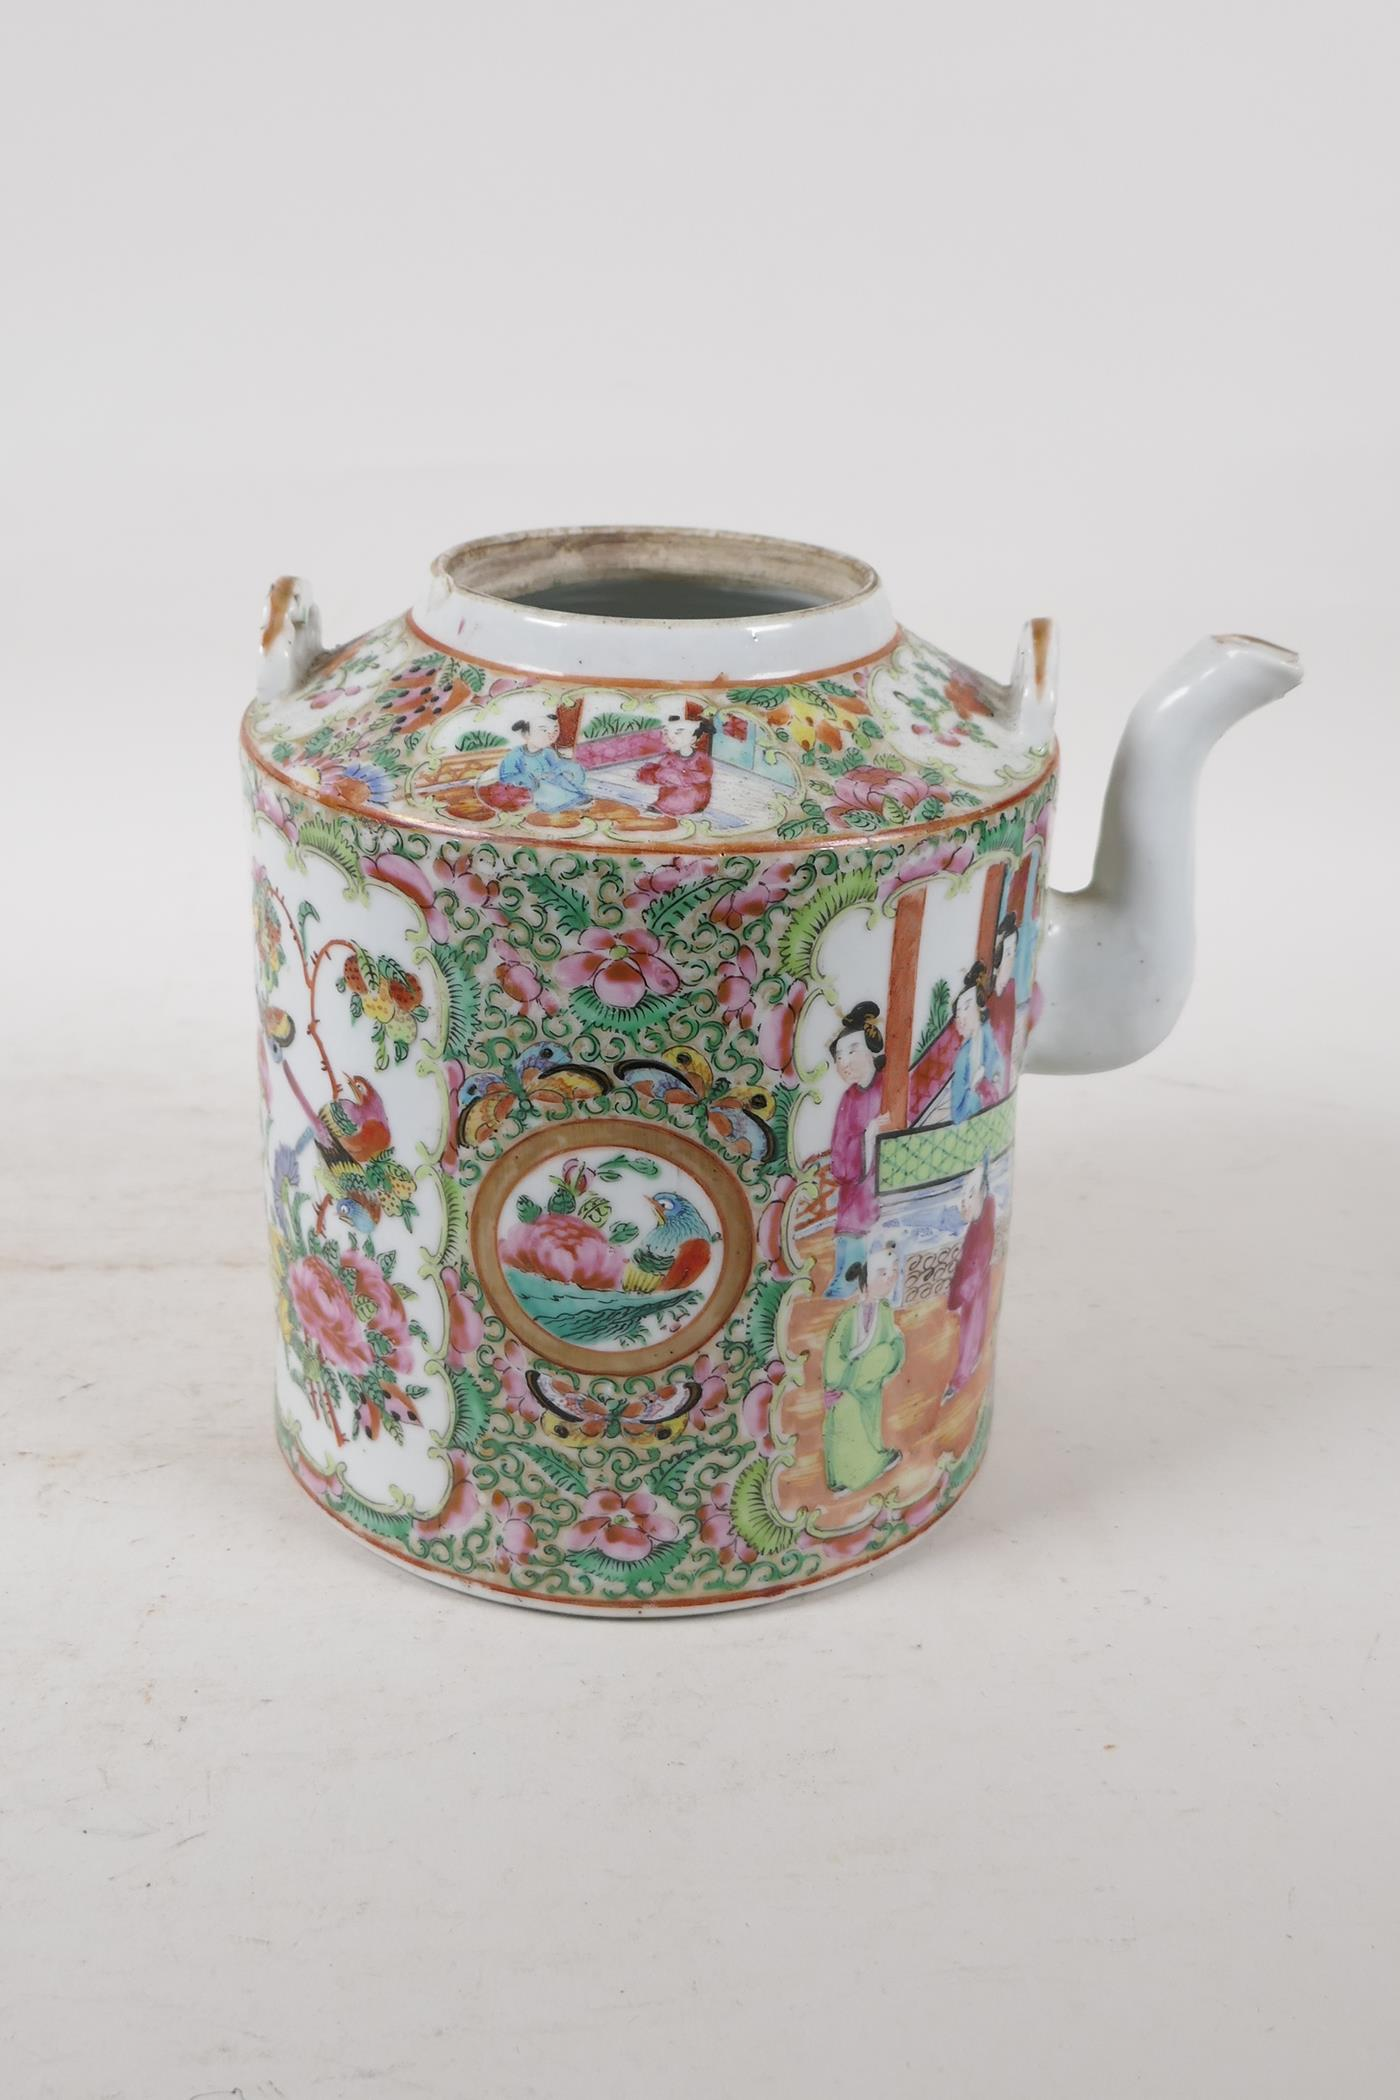 A Cantonese famille rose teapot decorated with figures, birds and flowers, A/F, and a republic - Image 6 of 7